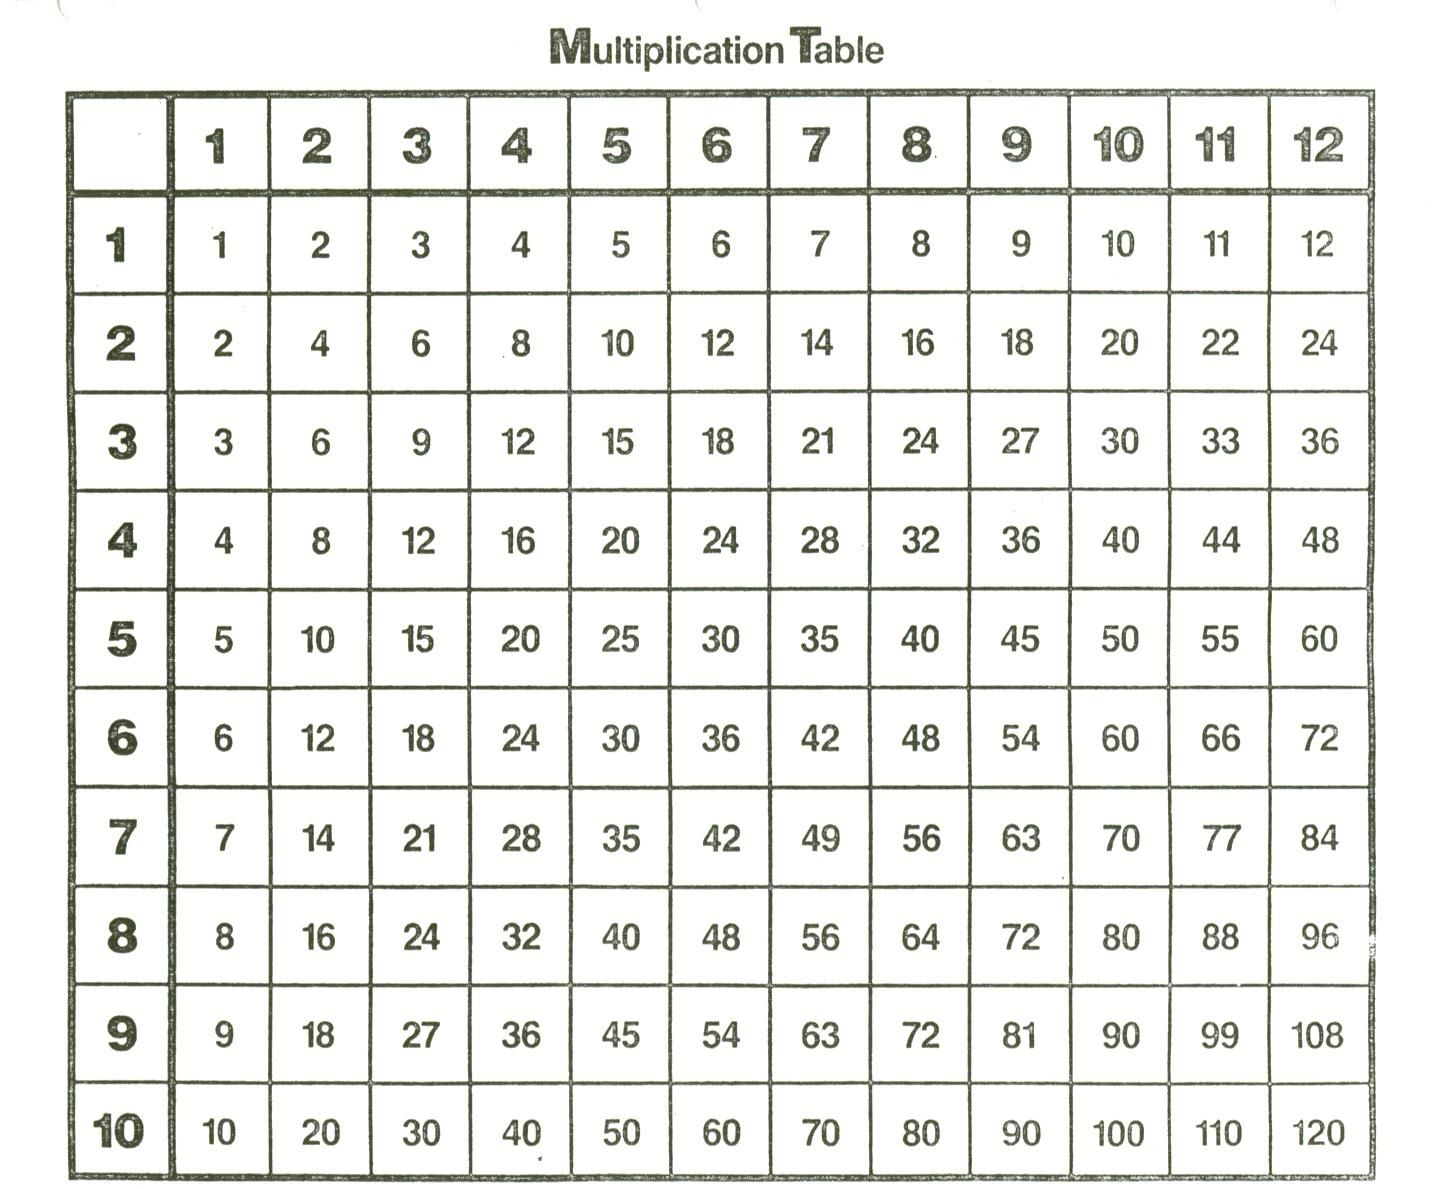 Times table chart 1 12 printable 12 times tables chart times table chart 1 12 printable 12 times tables chart gamestrikefo Image collections